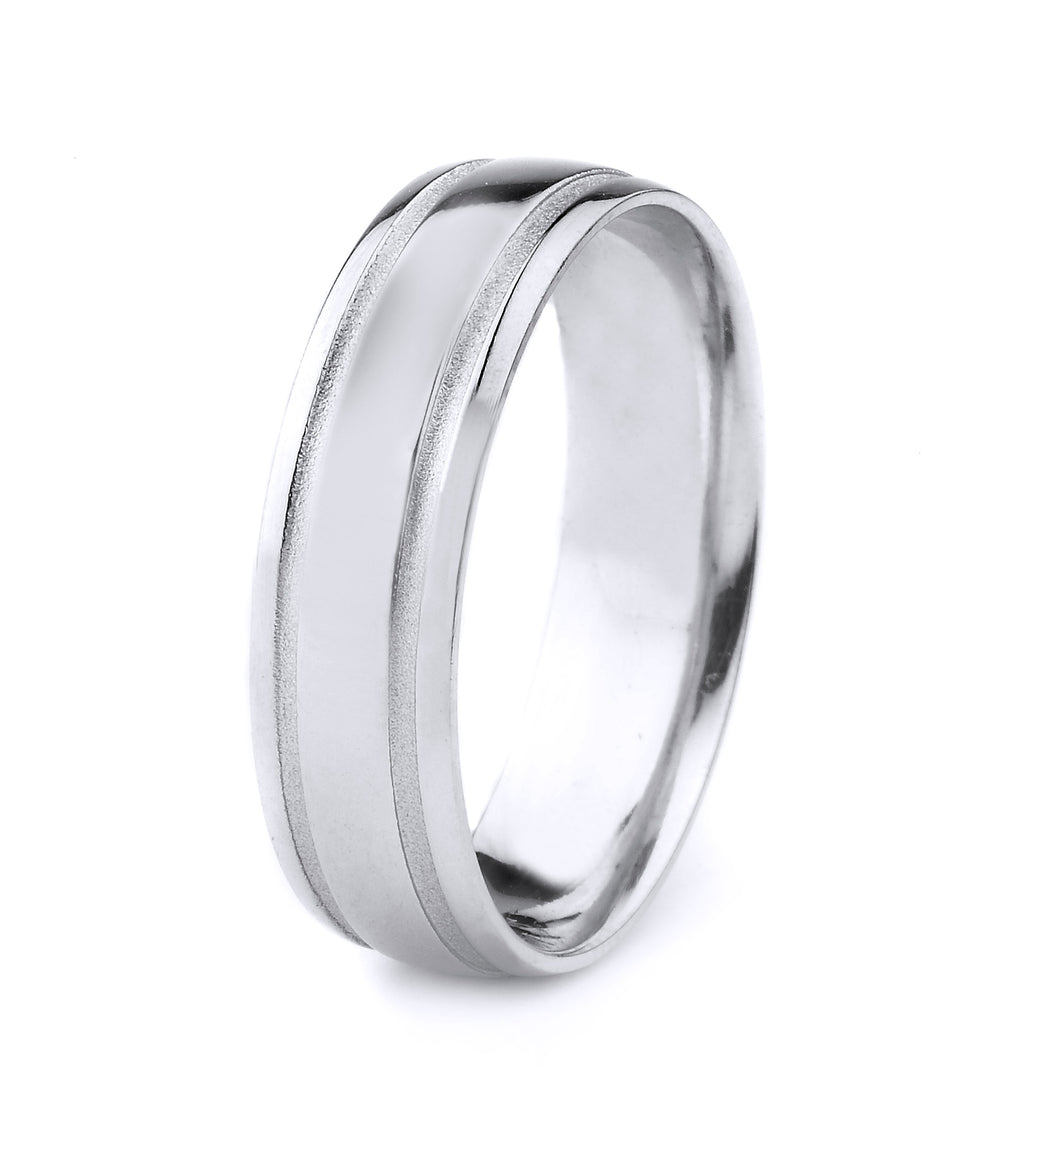 18K GOLD MENS WEDDING BAND WITH POLISHED FINISH AND PARALLEL MATTE GROOVES